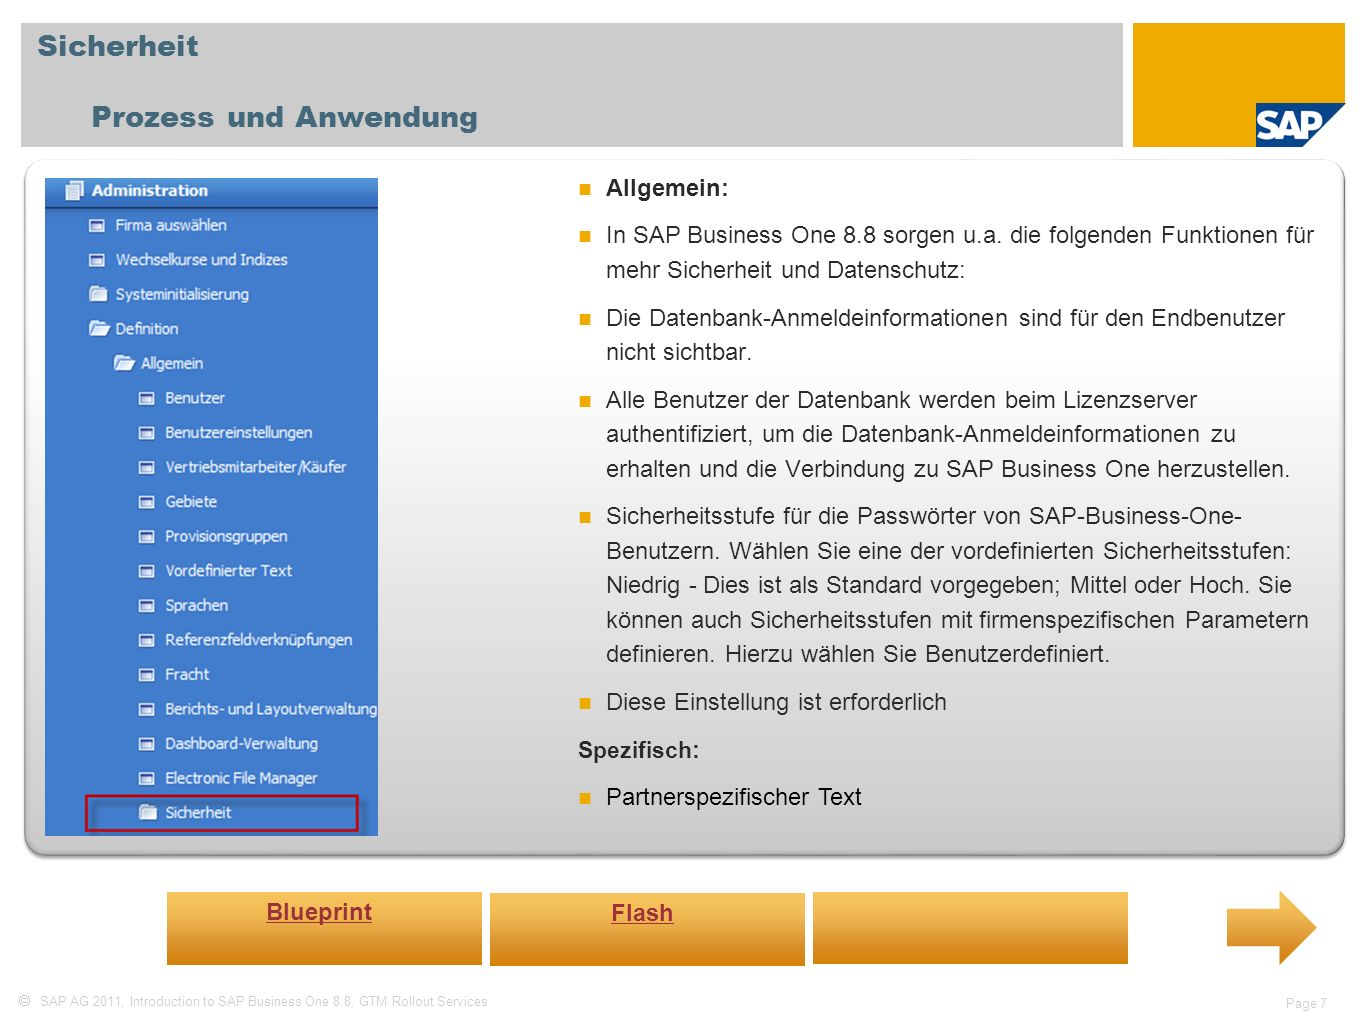 SAP AG 2011, Introduction to SAP Business One 8.8, GTM Rollout Services Page 7 Sicherheit Prozess und Anwendung Allgemein: In SAP Business One 8.8 sorgen u.a.